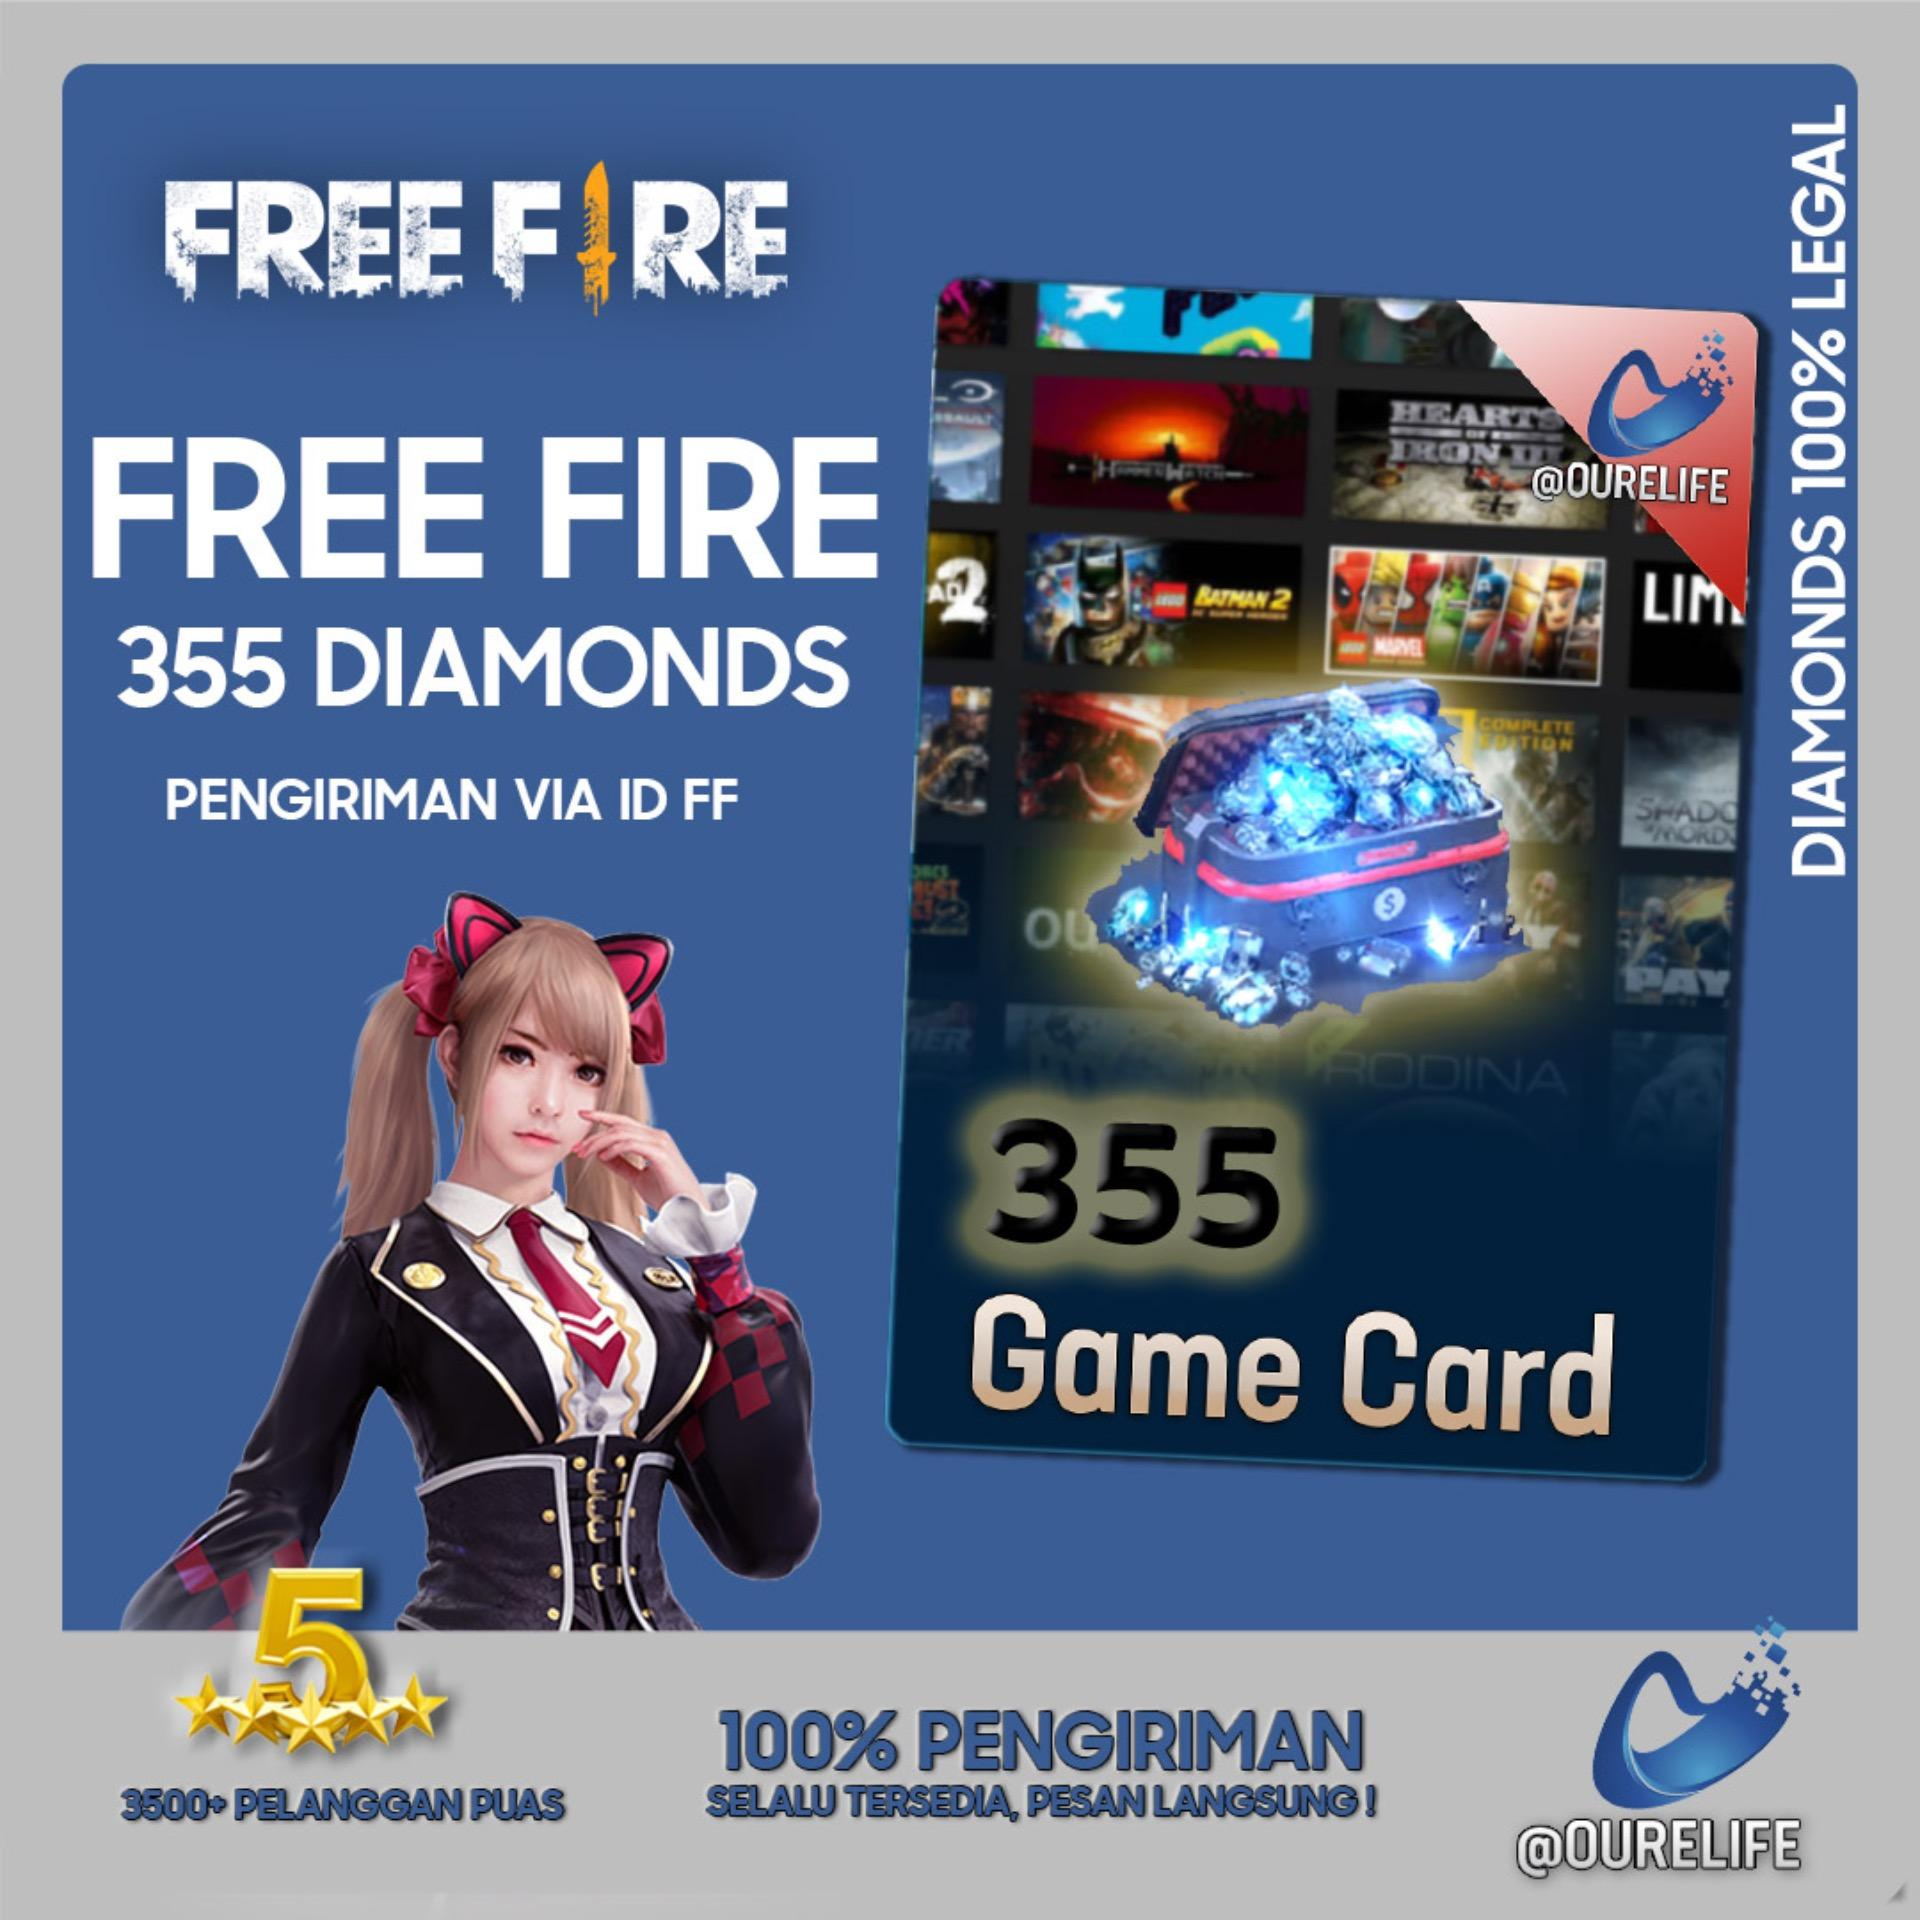 Top Up 355 Diamond Free Fire By Ourelife.co.id.